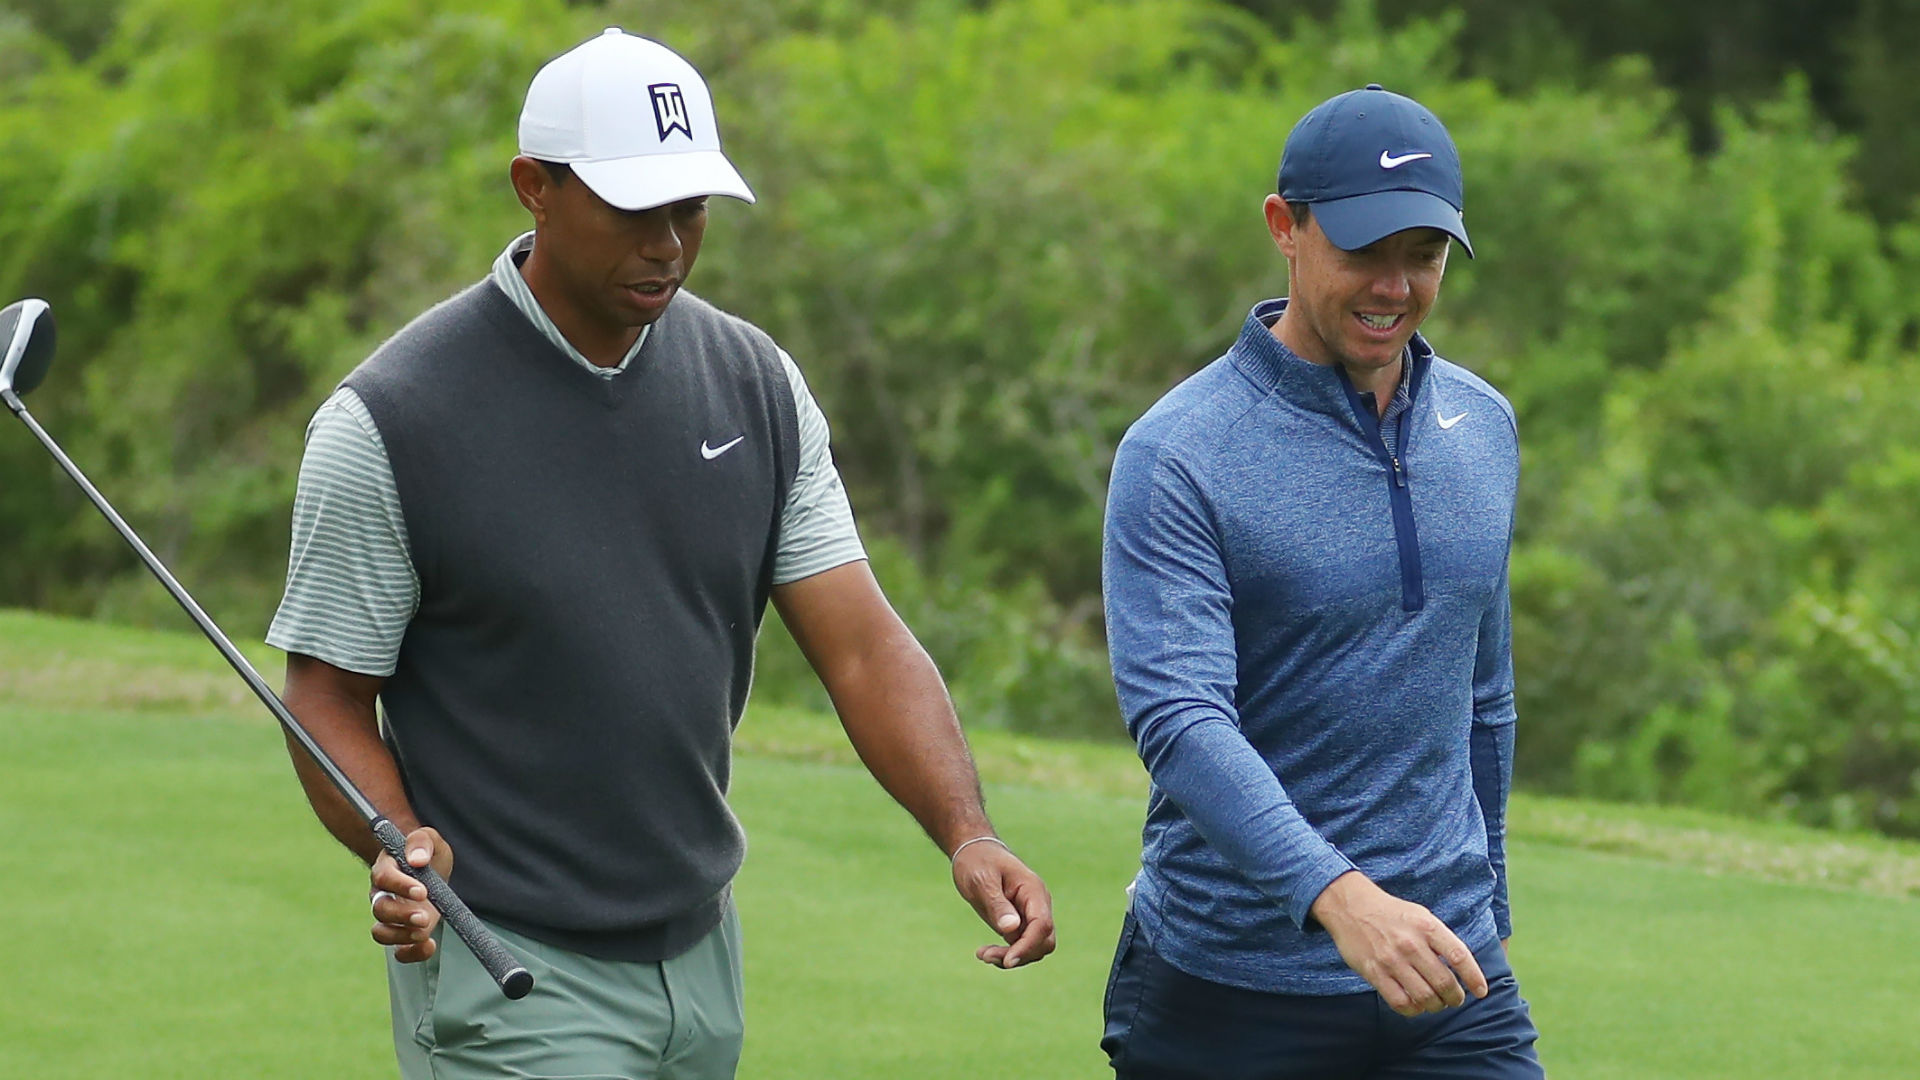 Tiger to catch Jack? McIlroy's glory days over? USA set for Ryder Cup dominance? – golf's biggest debates in the 2020s